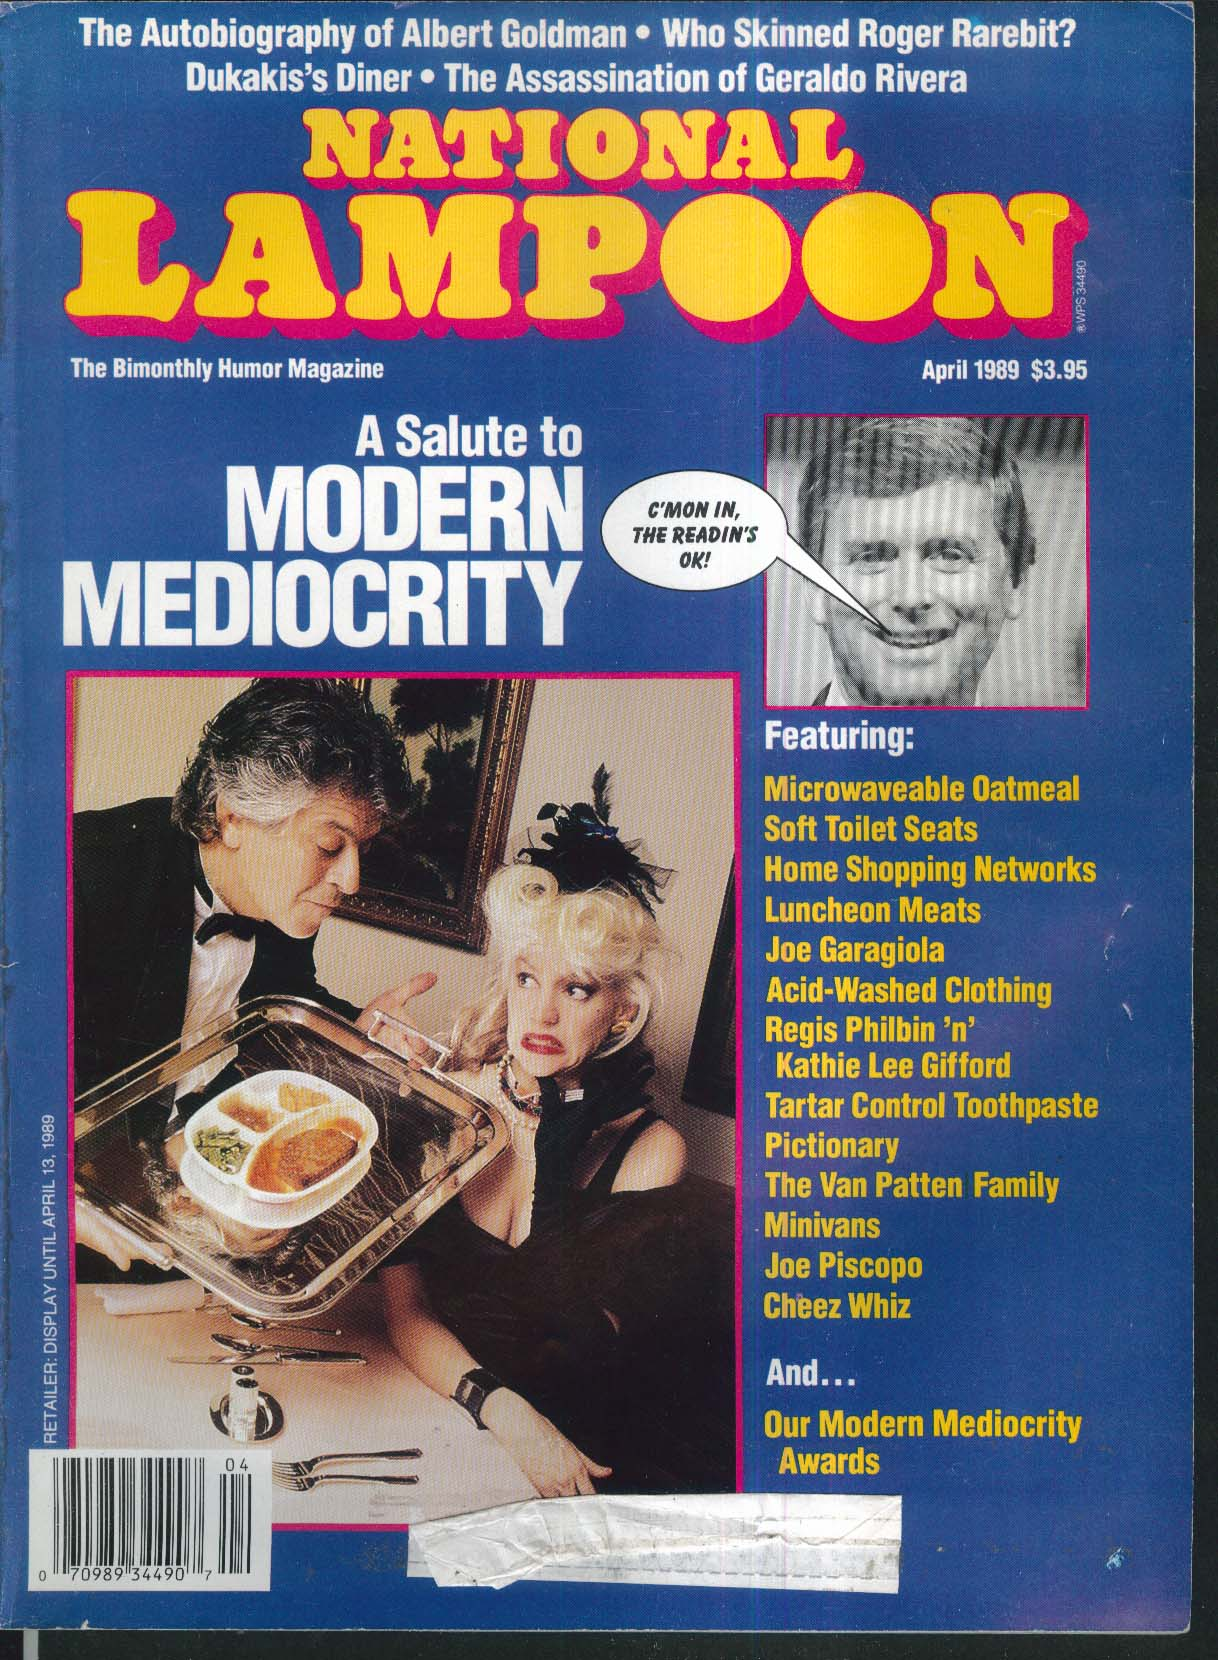 NATIONAL LAMPOON Joe Garagiola Regis Philbin Joe Piscopo Dukakis Geraldo 4 1989